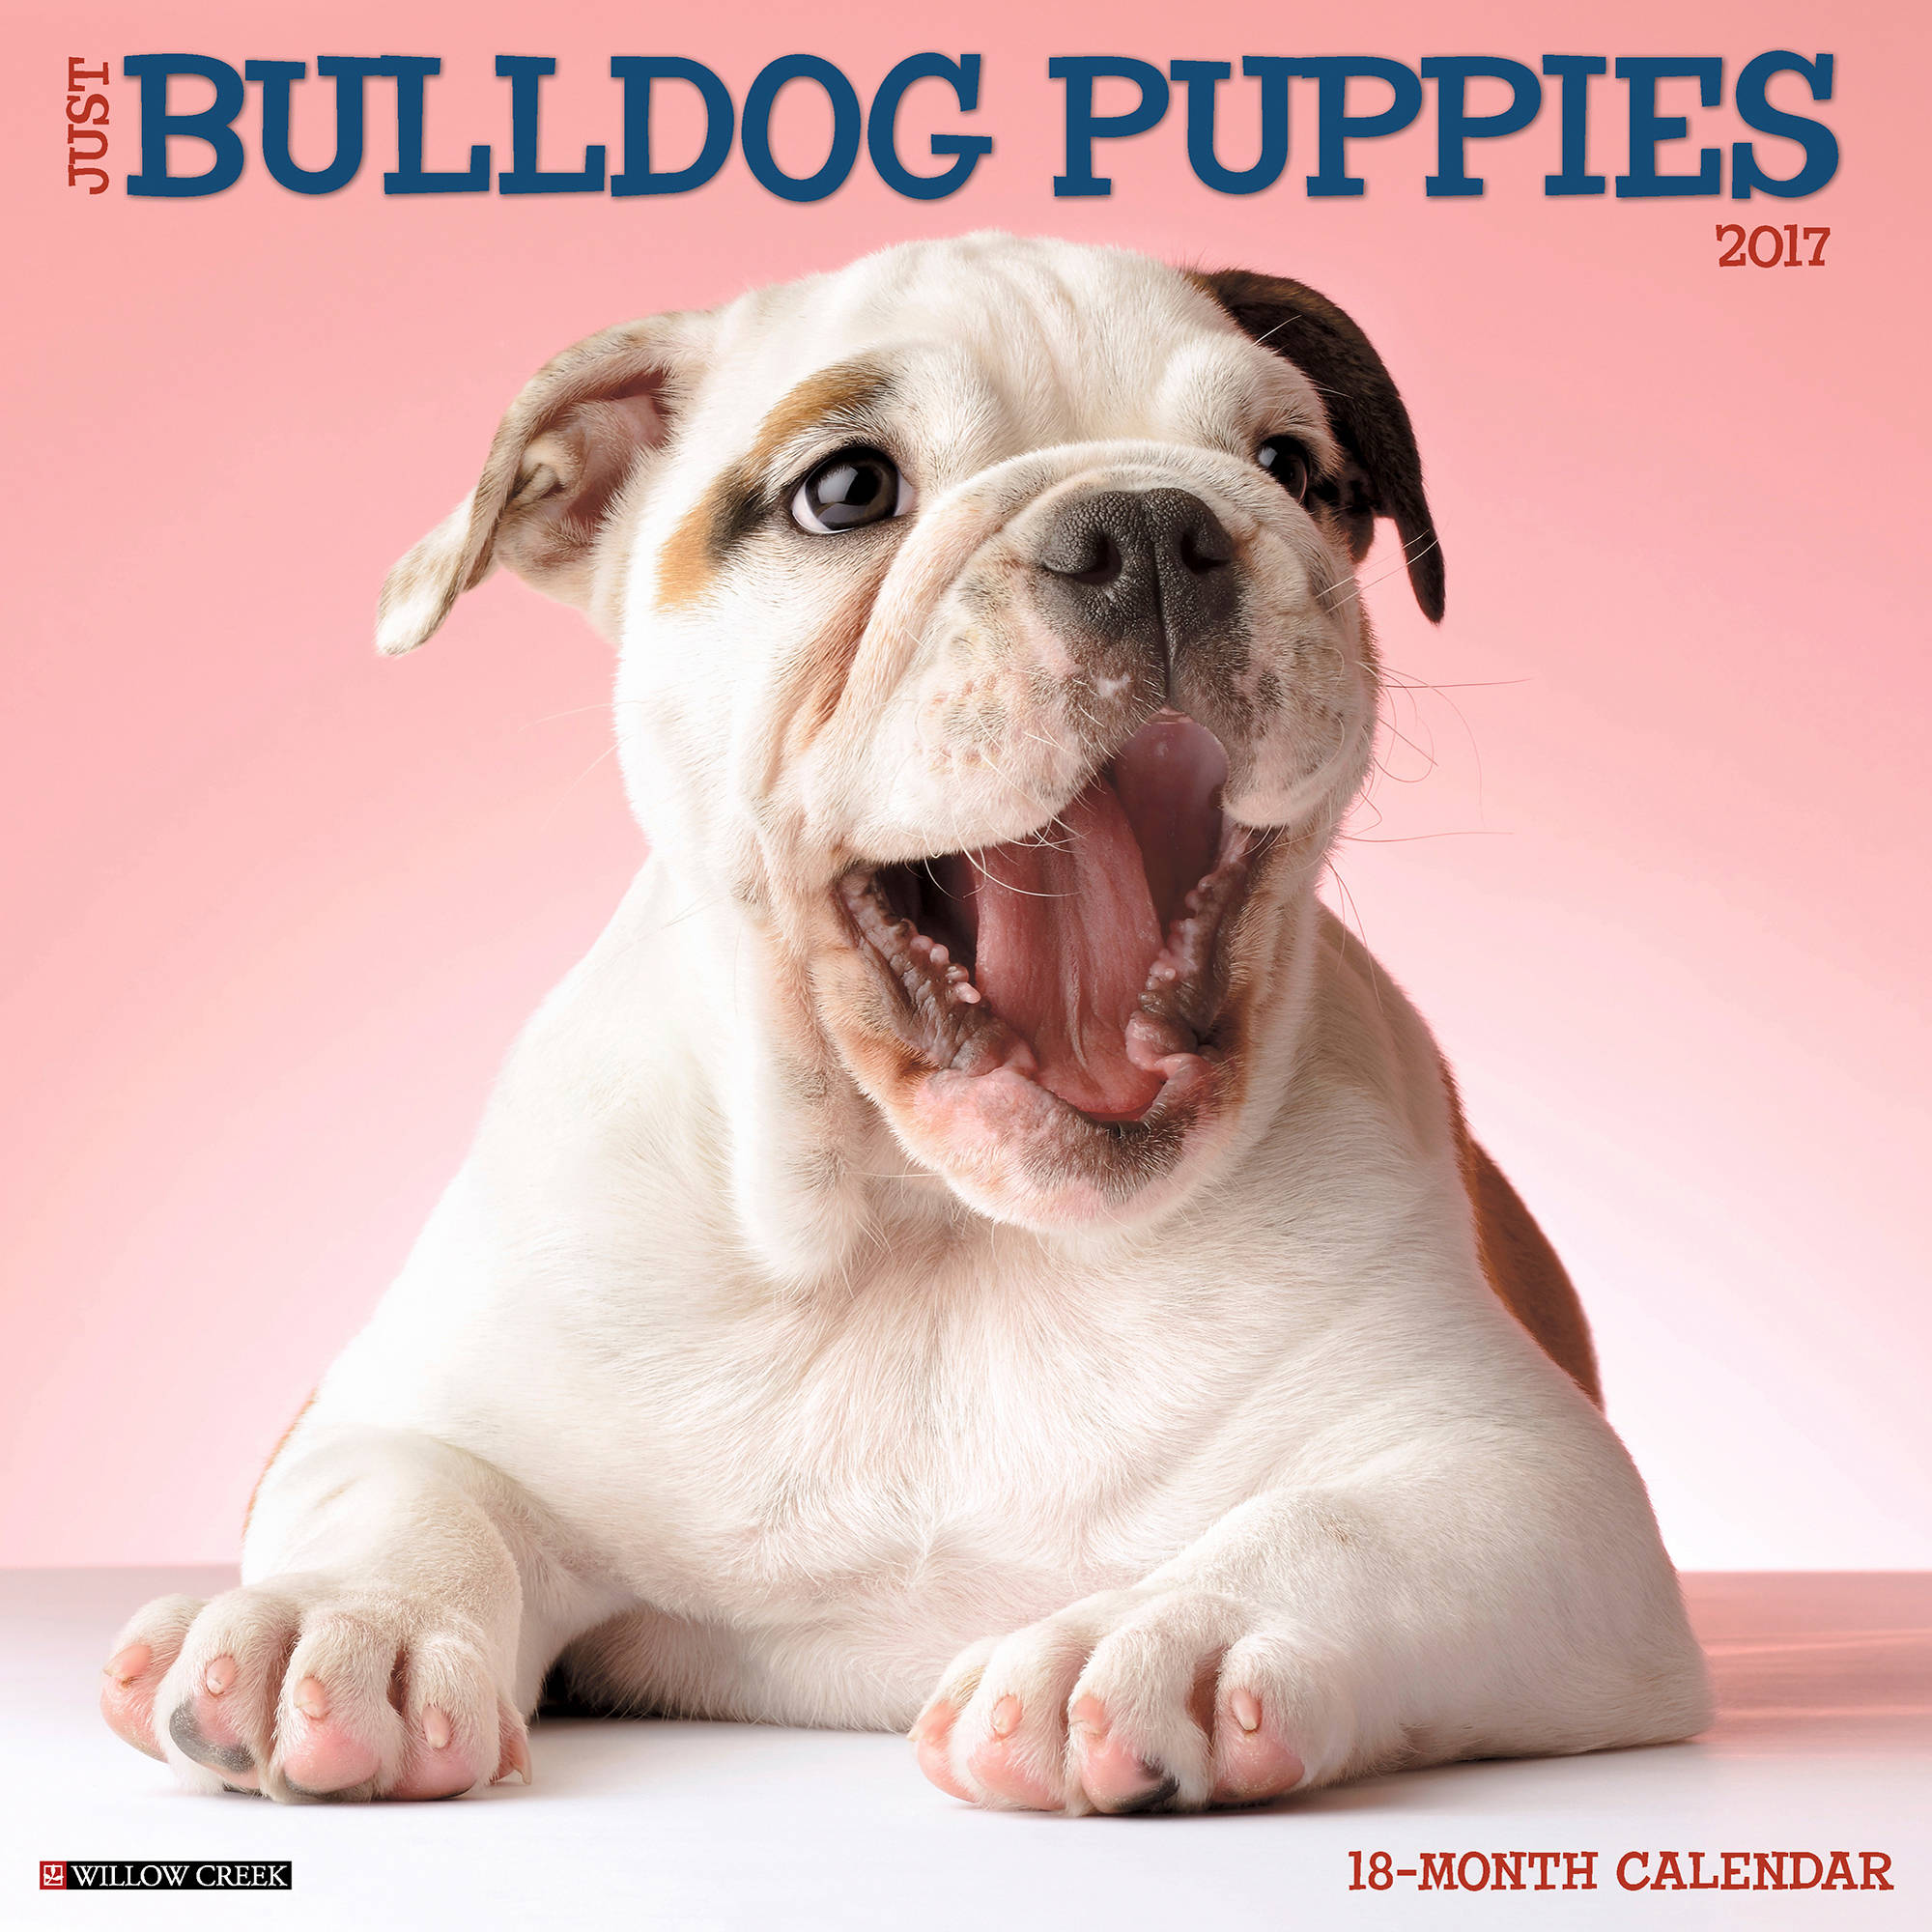 2017 Just Bulldog Puppies Wall Calendar